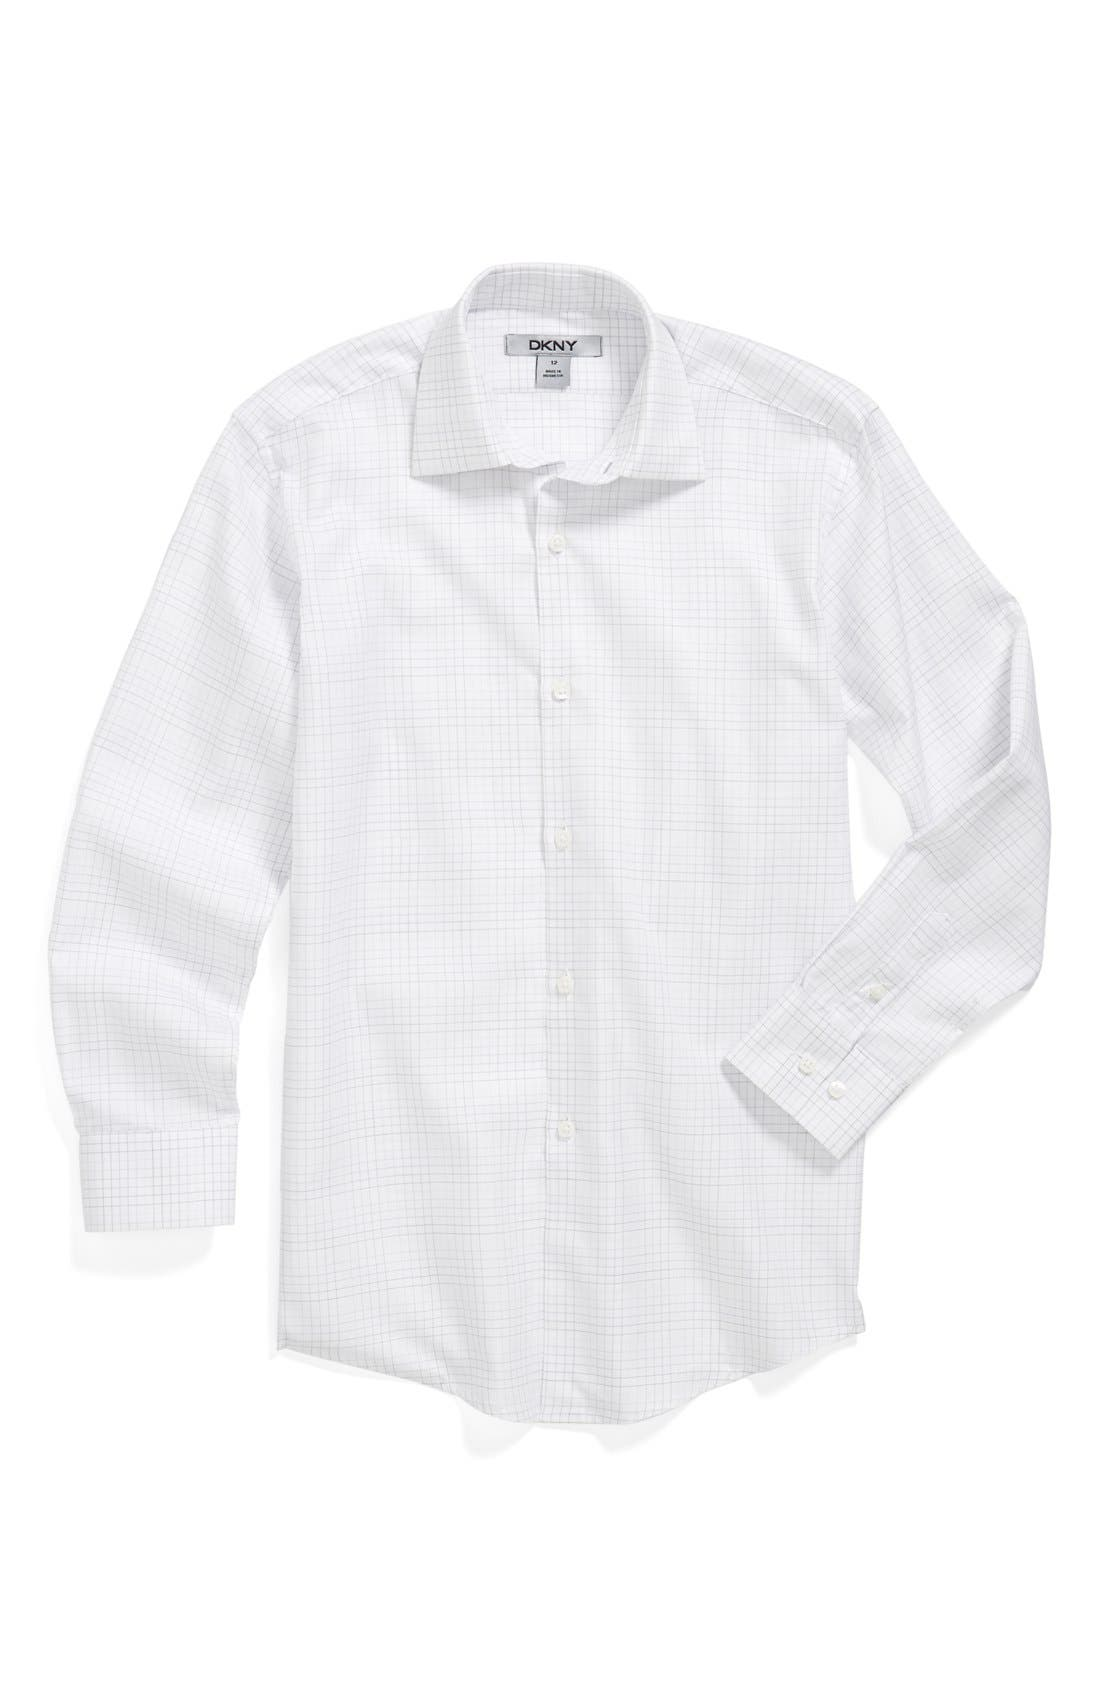 Alternate Image 1 Selected - DKNY Check Dress Shirt (Big Boys)